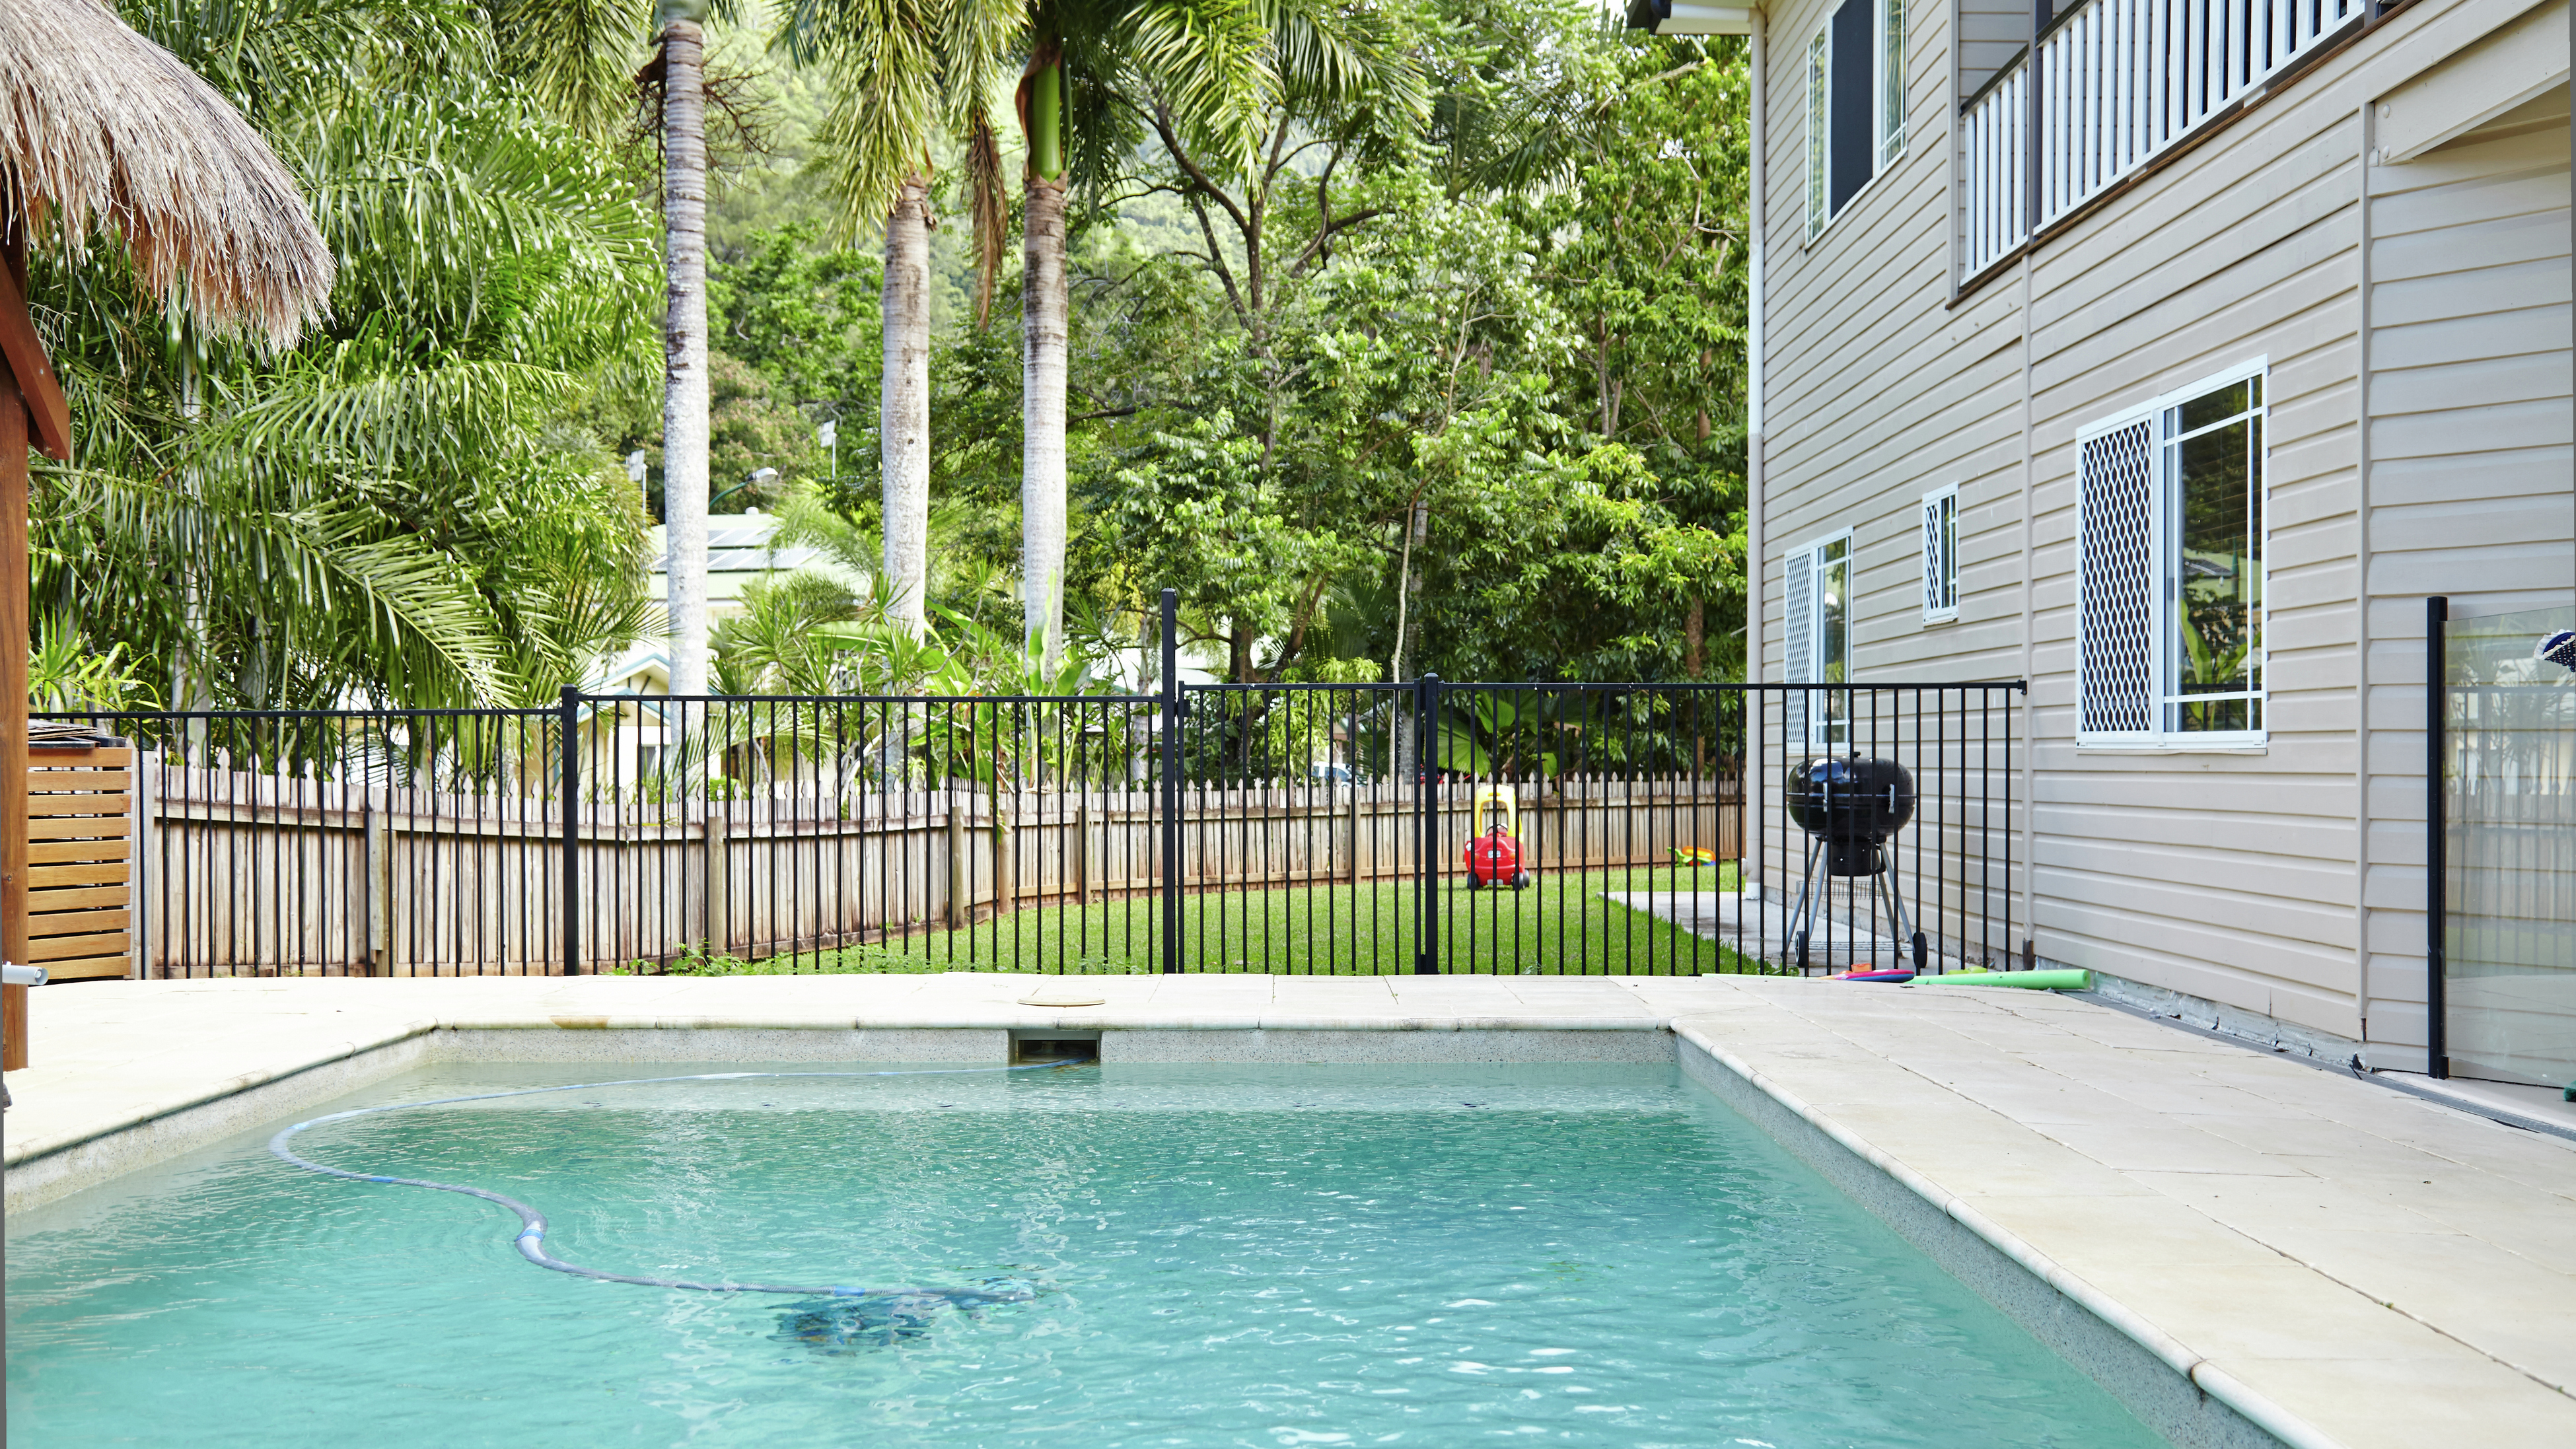 A pool surrounded by pool fencing outside a house